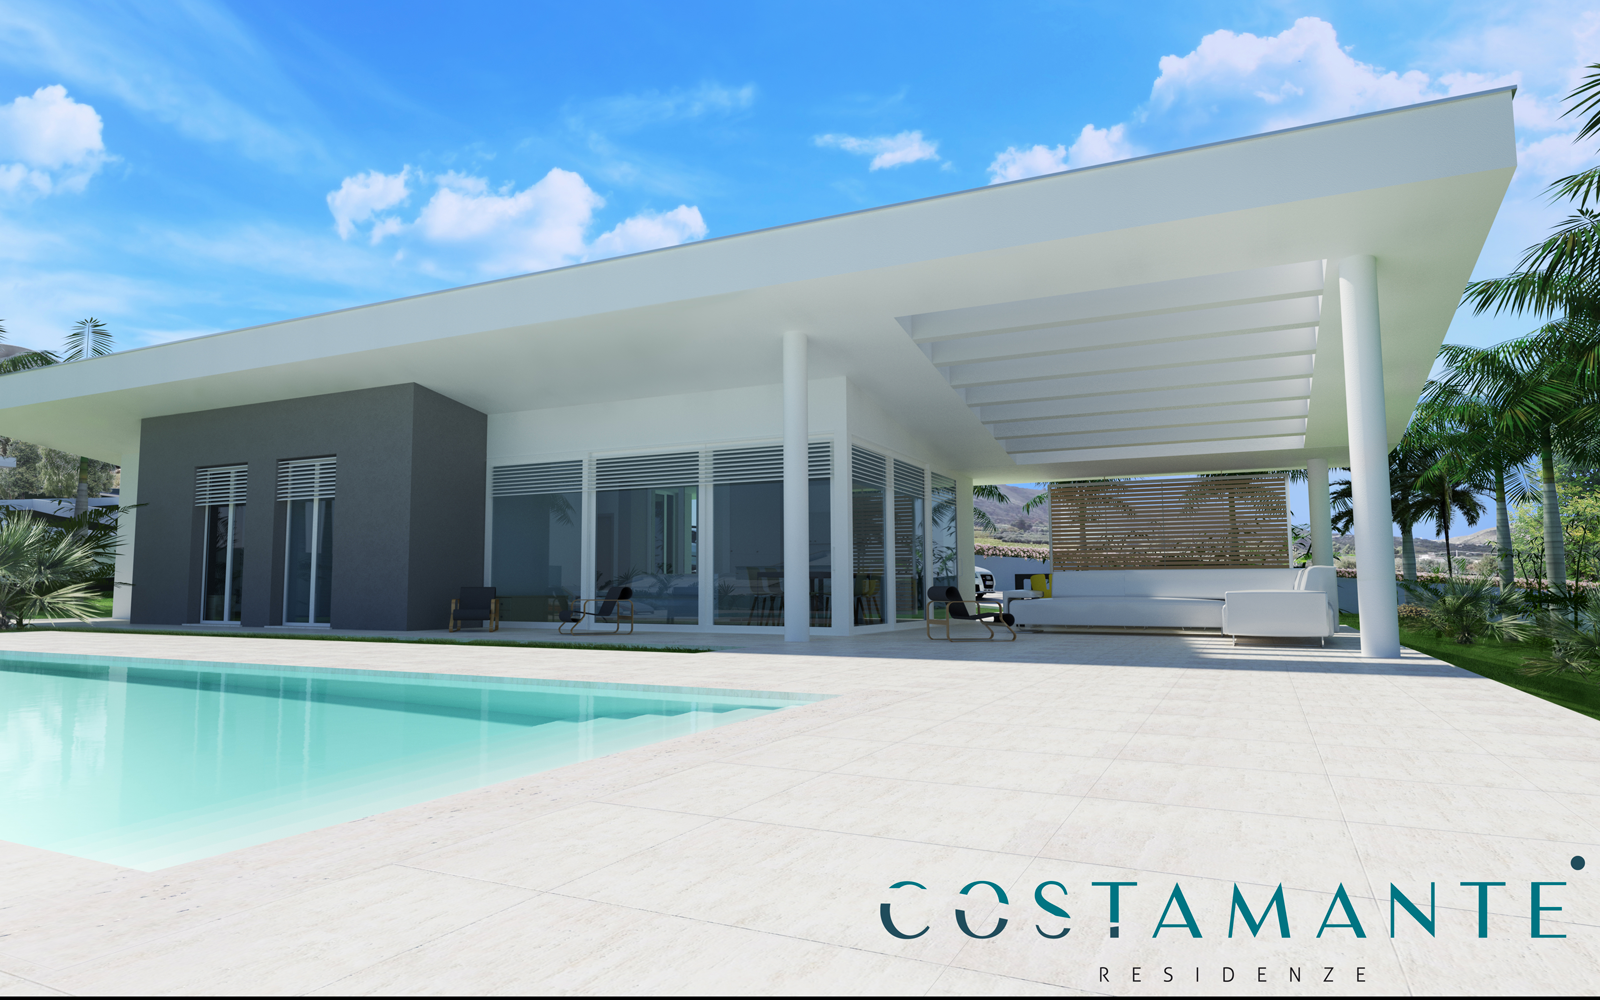 Costamante Residenze